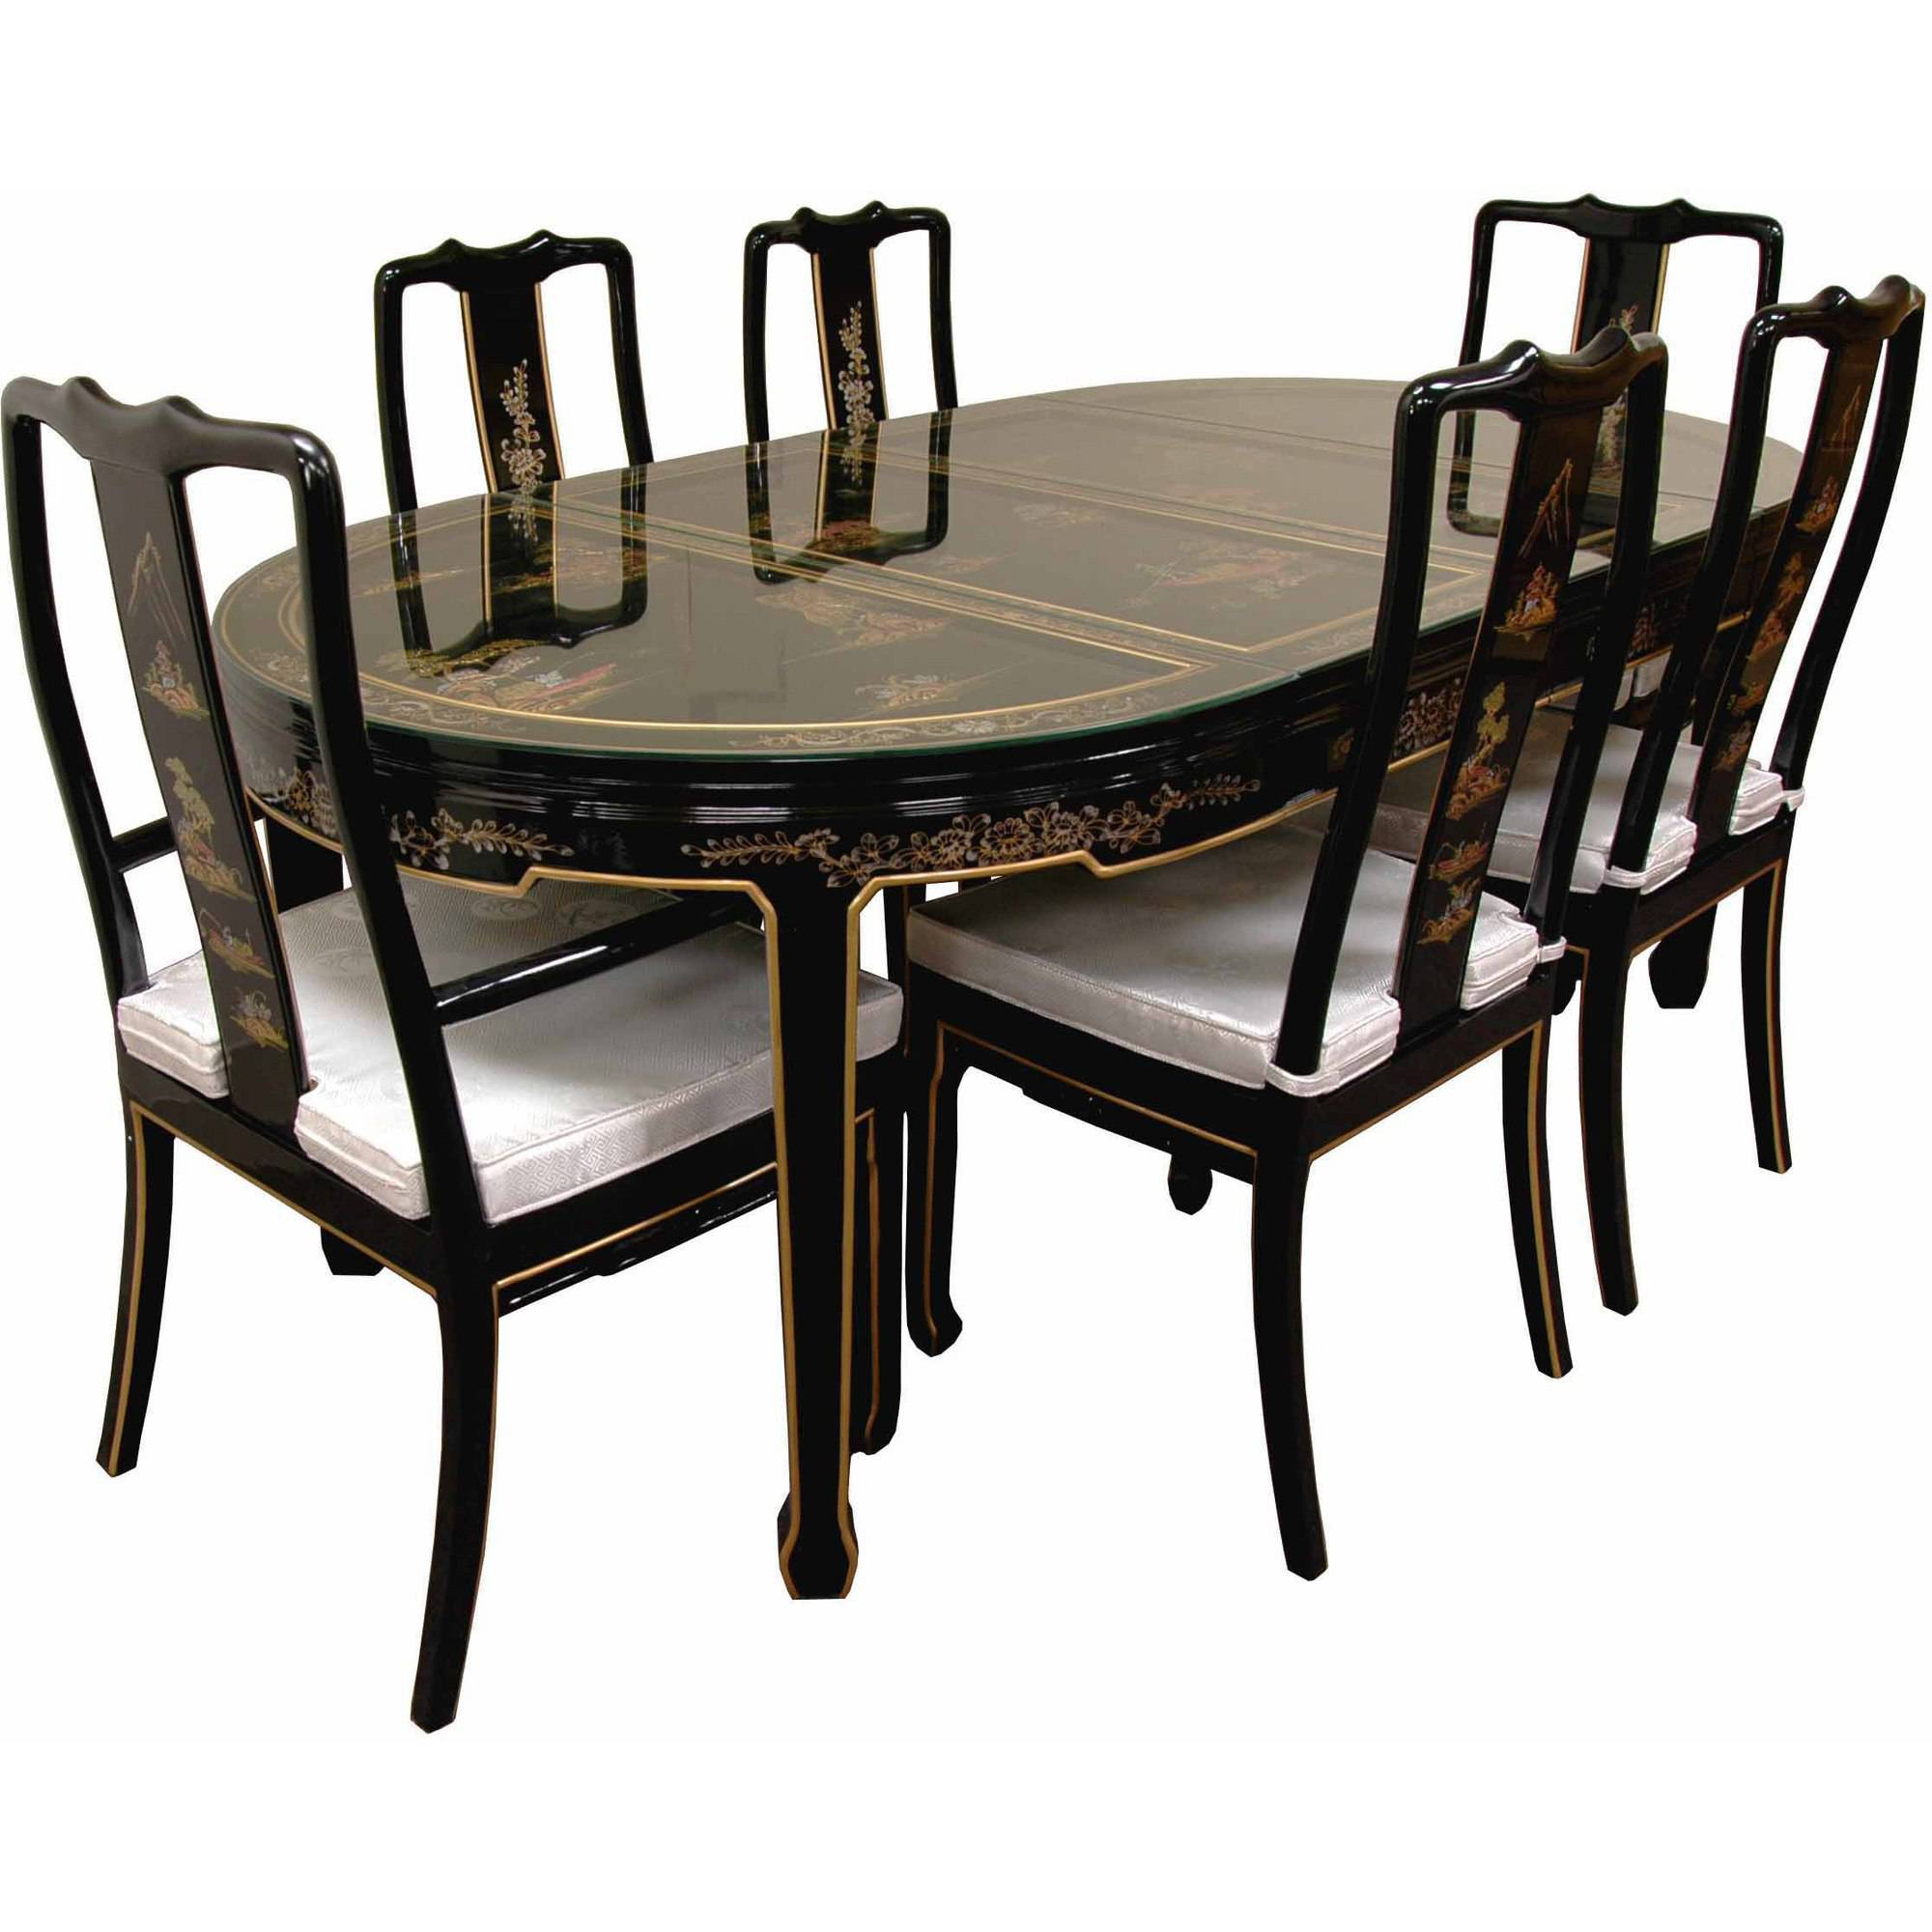 Superieur Hand Painted On Black Lacquer Dining Table With 6 Chairs